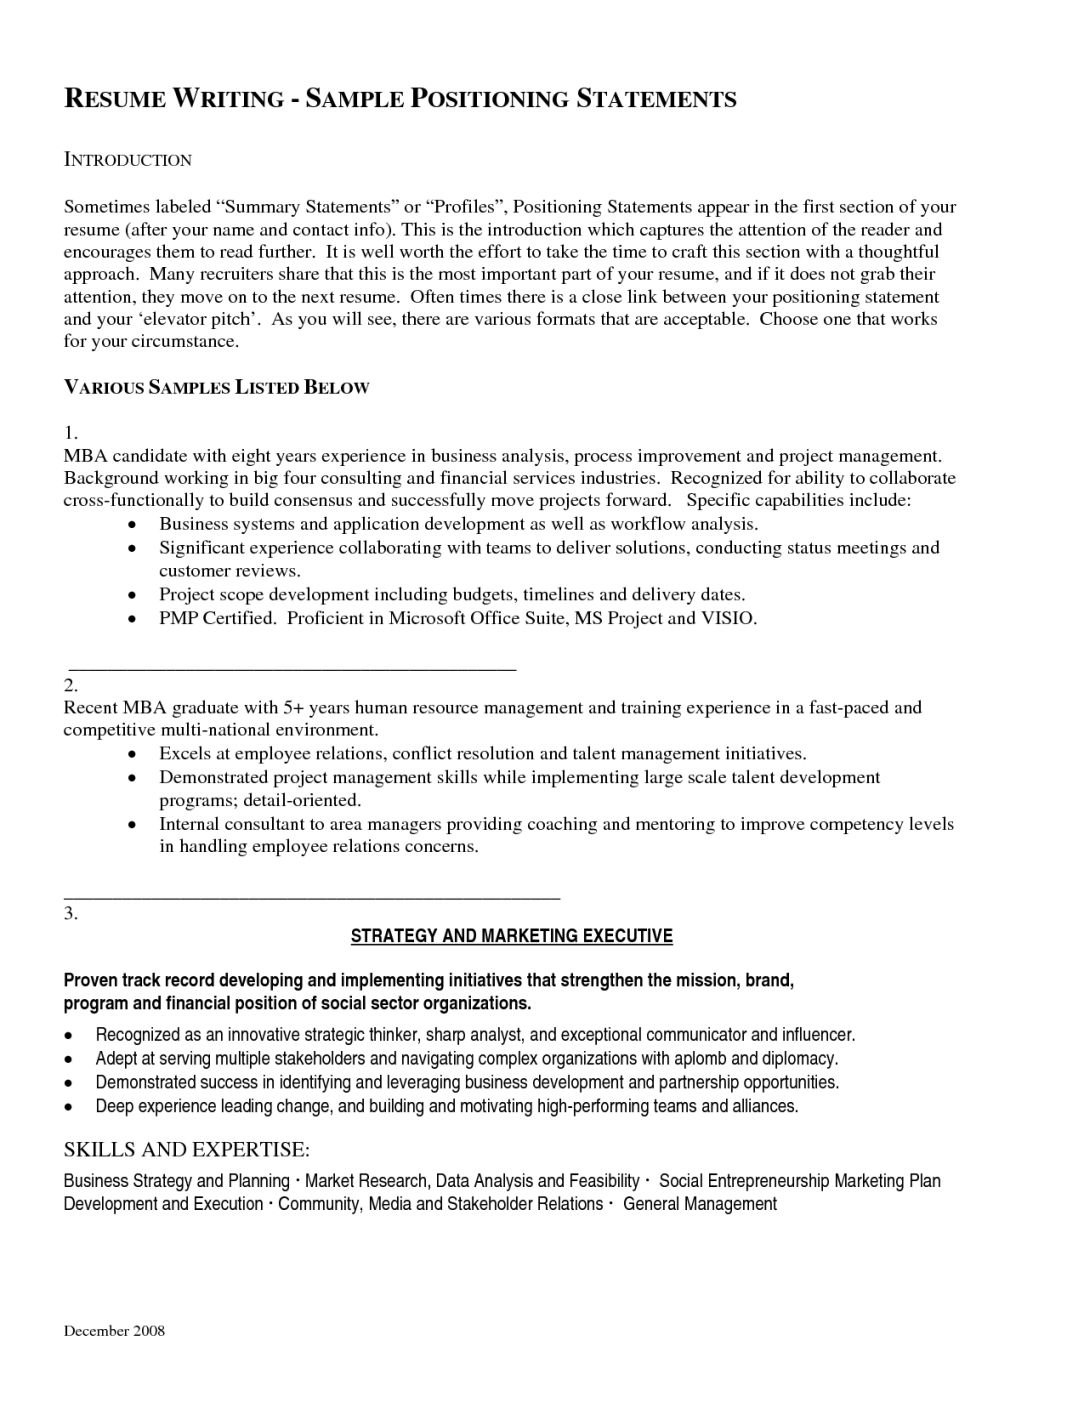 Resume Statement Examples Homepage Example Resume Profile Statement Examples For Your  Home